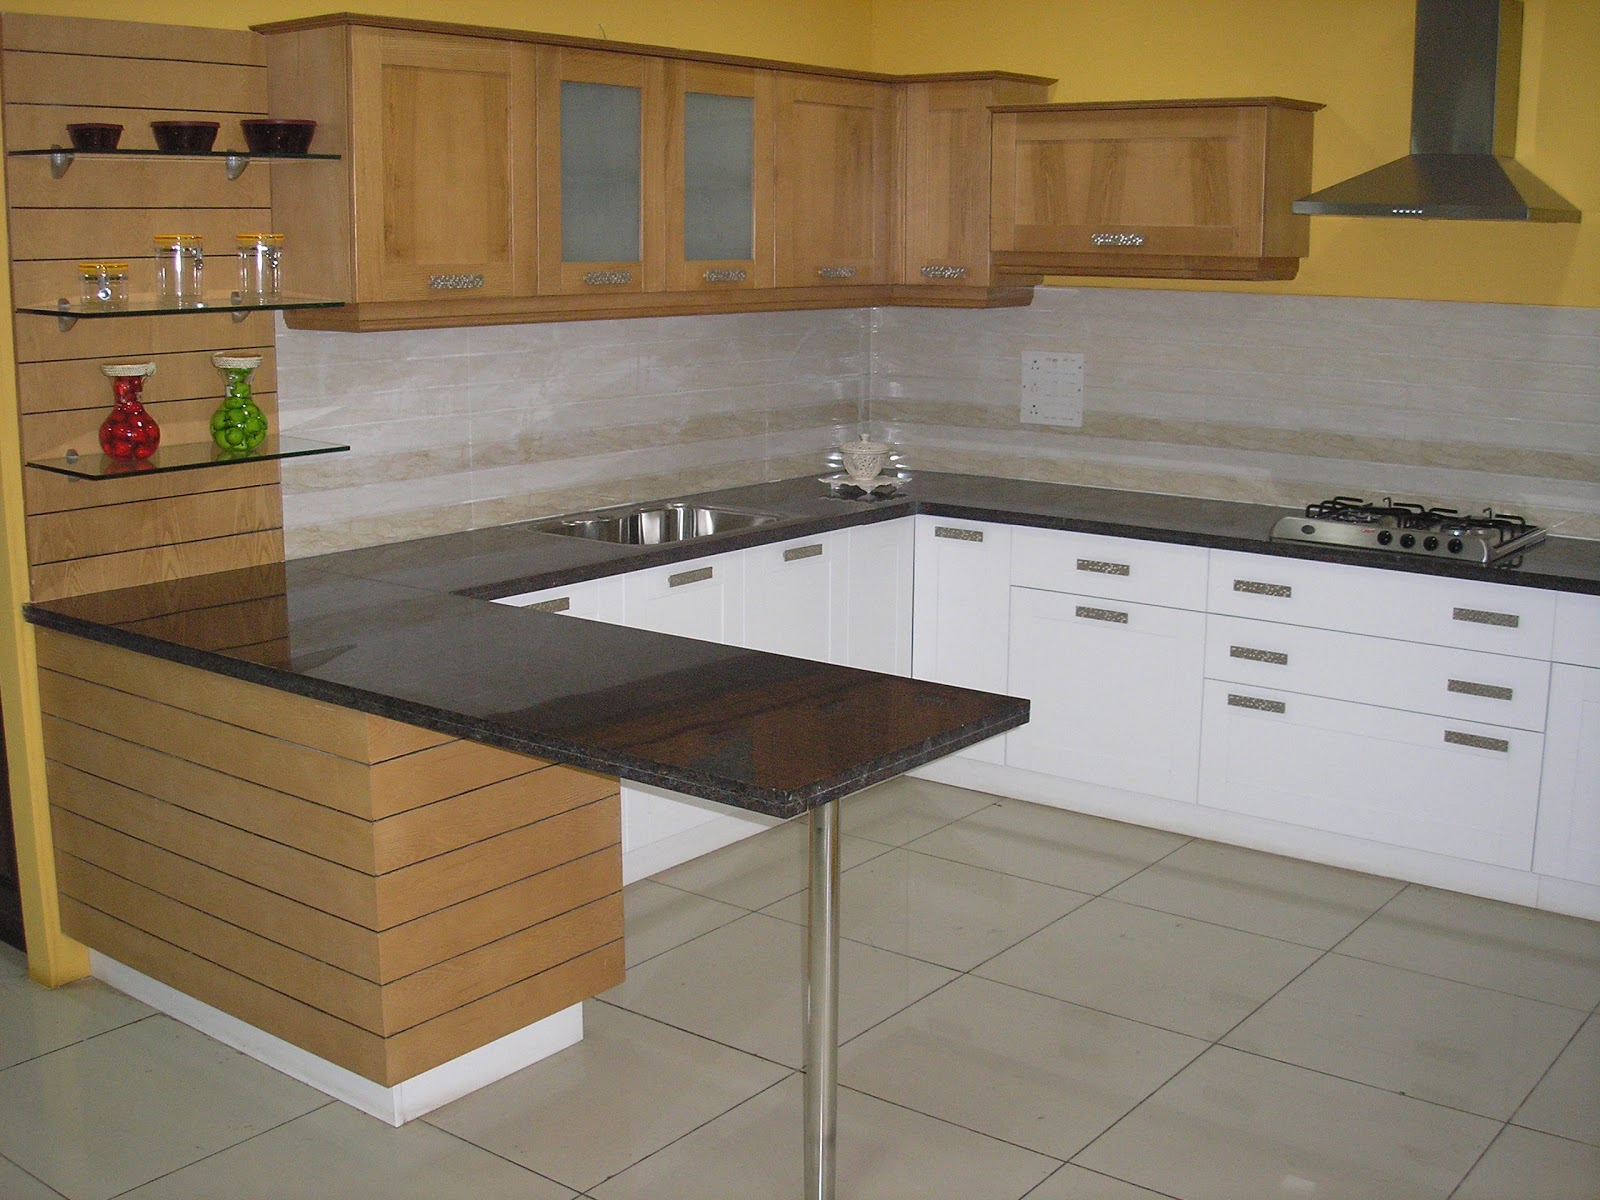 Modular Kitchen India In Apartments Modular Kitchen India In Apartments Home Design And Decor